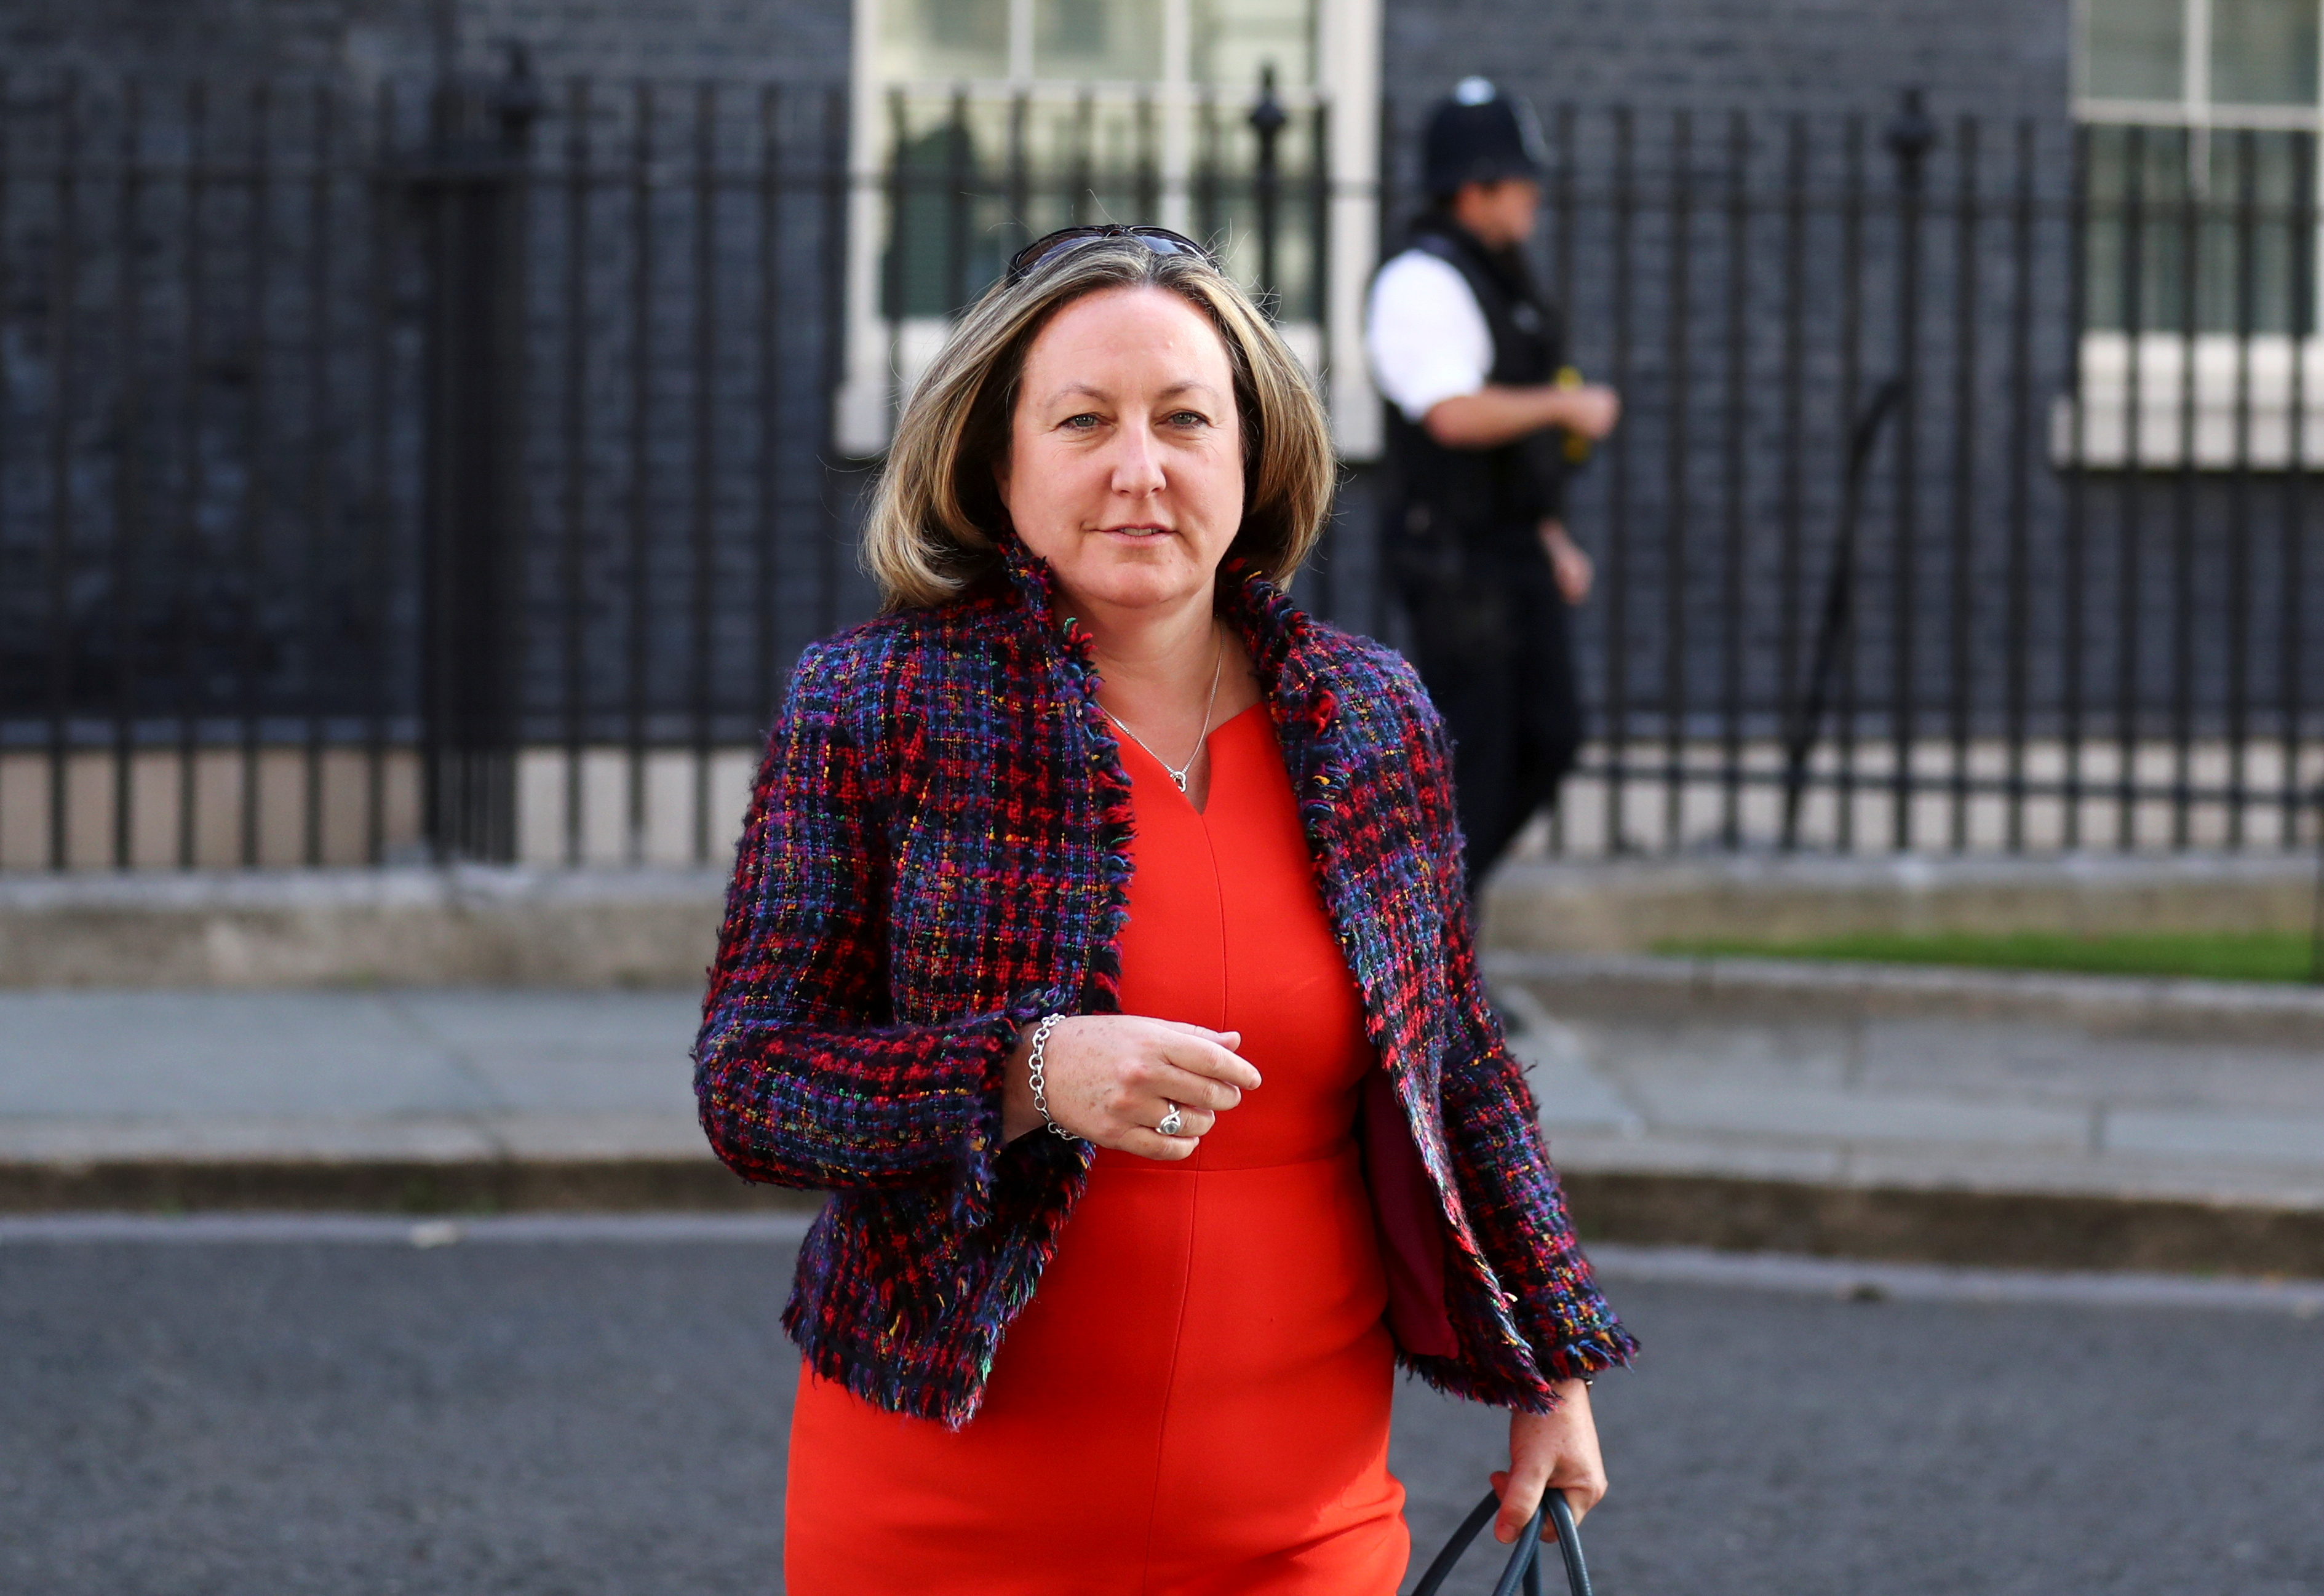 Britain's Secretary of State for International Development Anne-Marie Trevelyan arrives for a cabinet meeting, the first since mid-March because of the coronavirus disease (COVID-19) pandemic, at Downing Street in London, Britain, July 21, 2020. REUTERS/Simon Dawson